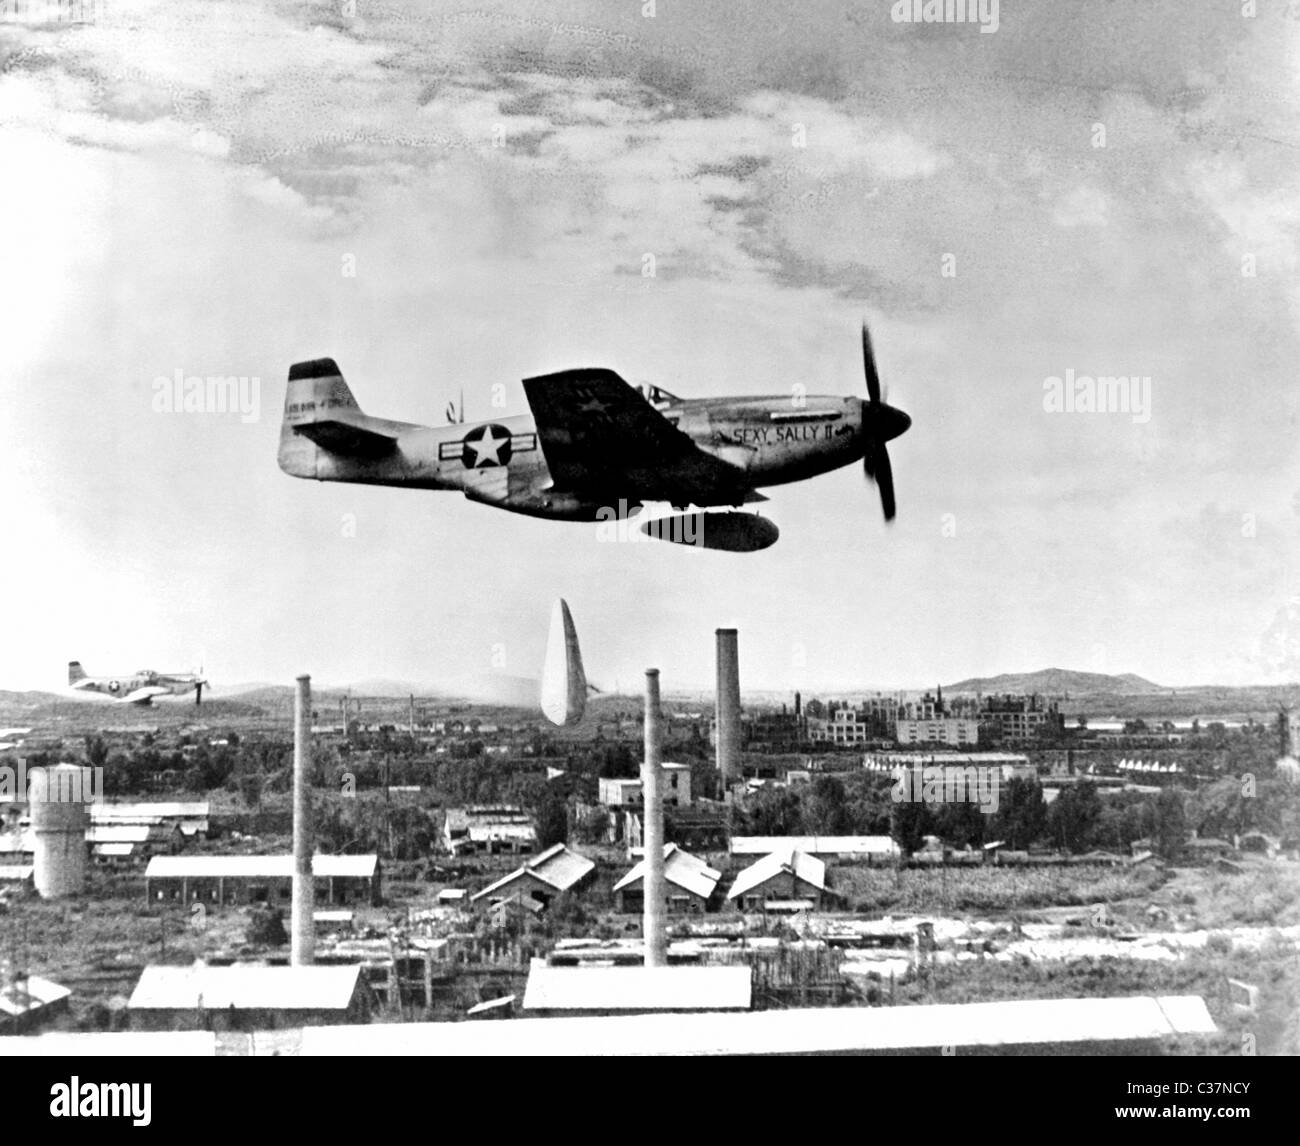 F-51 Mustang of the U.S. Fifth Air Force's 18th bomber wing releases two Napalm bombs over military target in - Stock Image